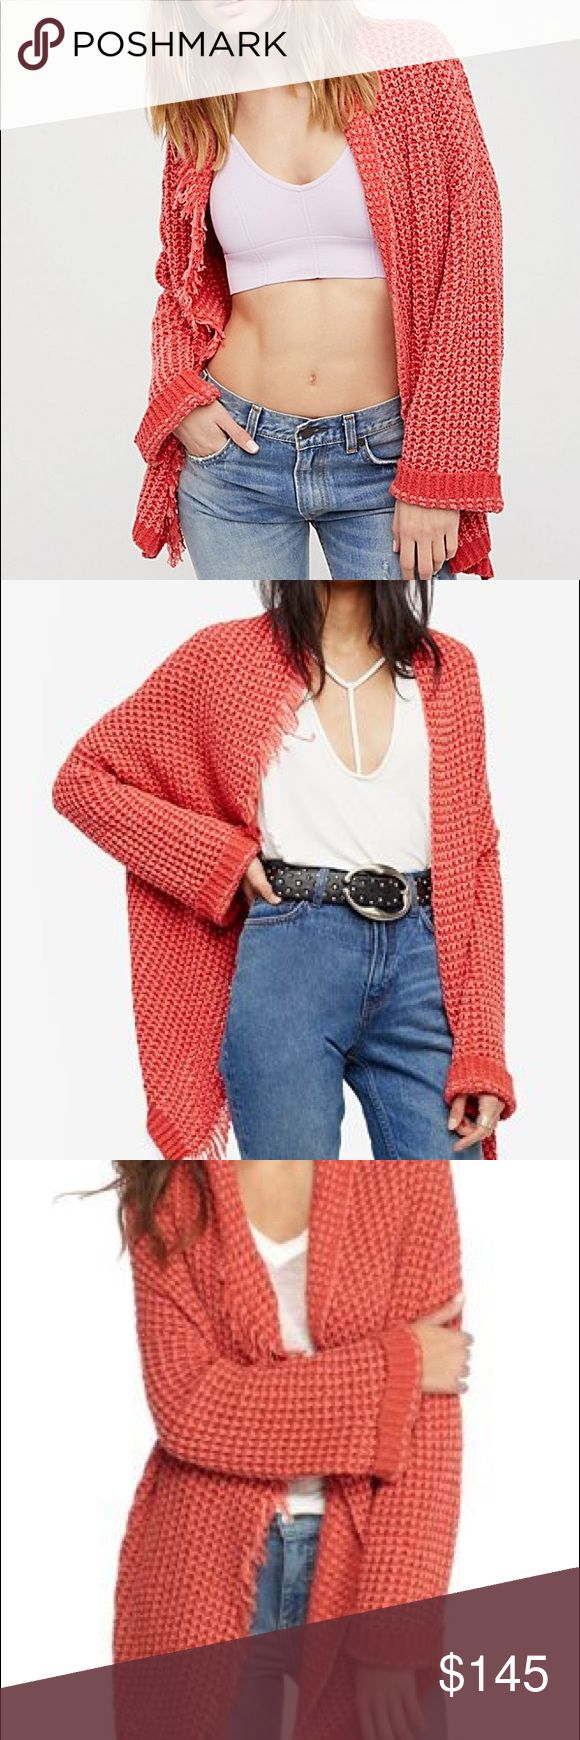 Free people cardigan NWT free people cardigan. Size medium. Color is orange/red. I will post a pic of the actual sweater when I get home! Free People Sweaters Cardigans